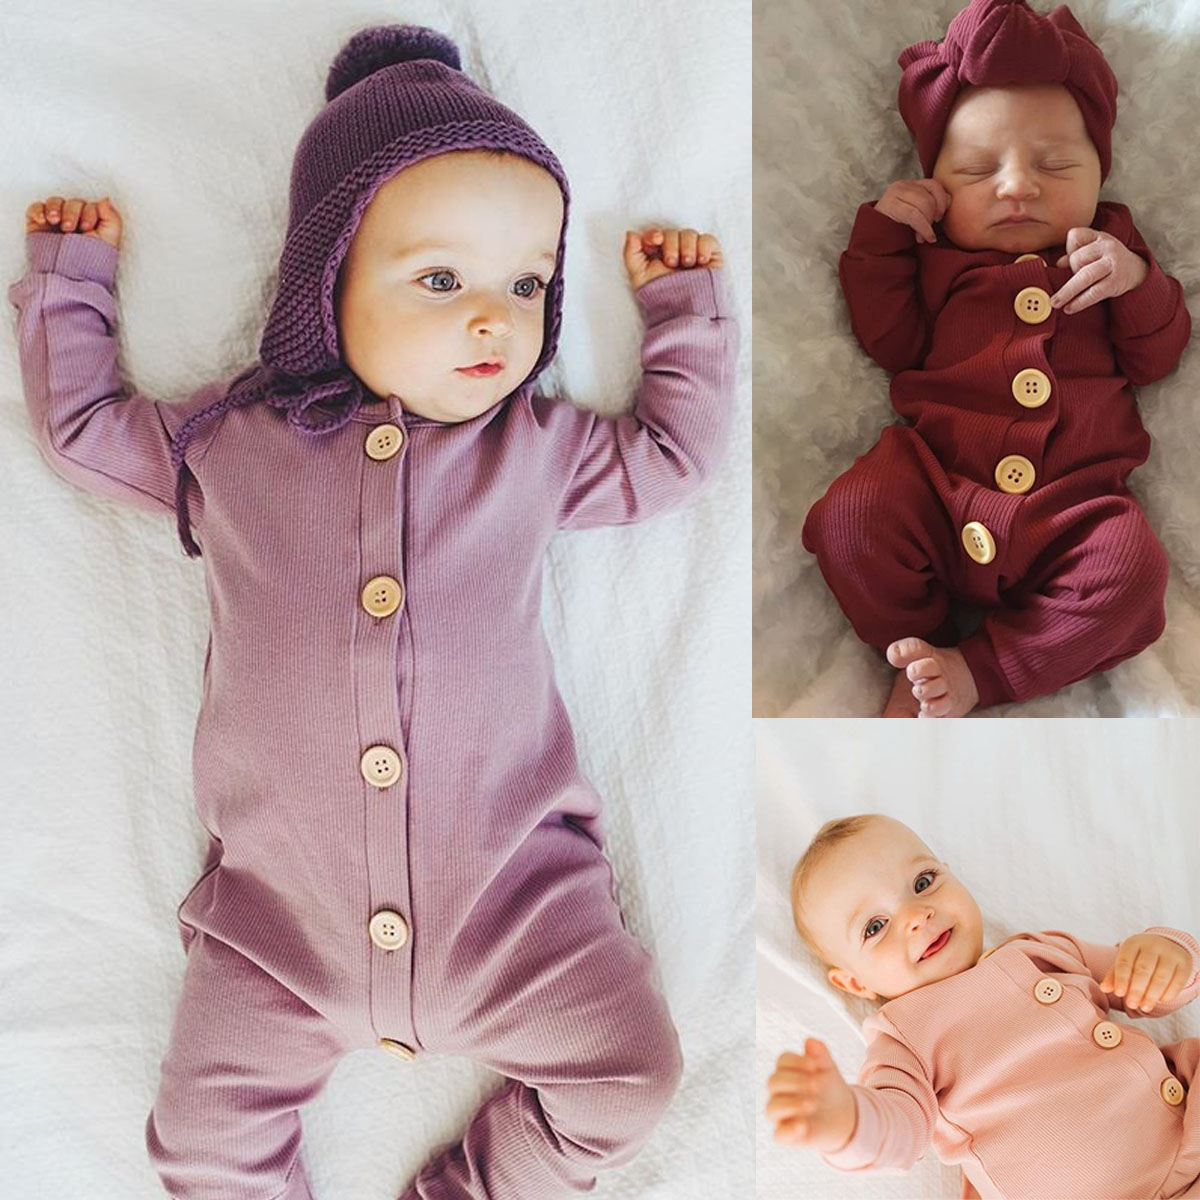 H24781133b9cf4fa9859df97d2b1ce7a09 Spring Fall Newborn Baby Girl Boy Clothes Long Sleeve Knitted Romper + Headband Jumpsuit 2PCS Outfit 0-24M